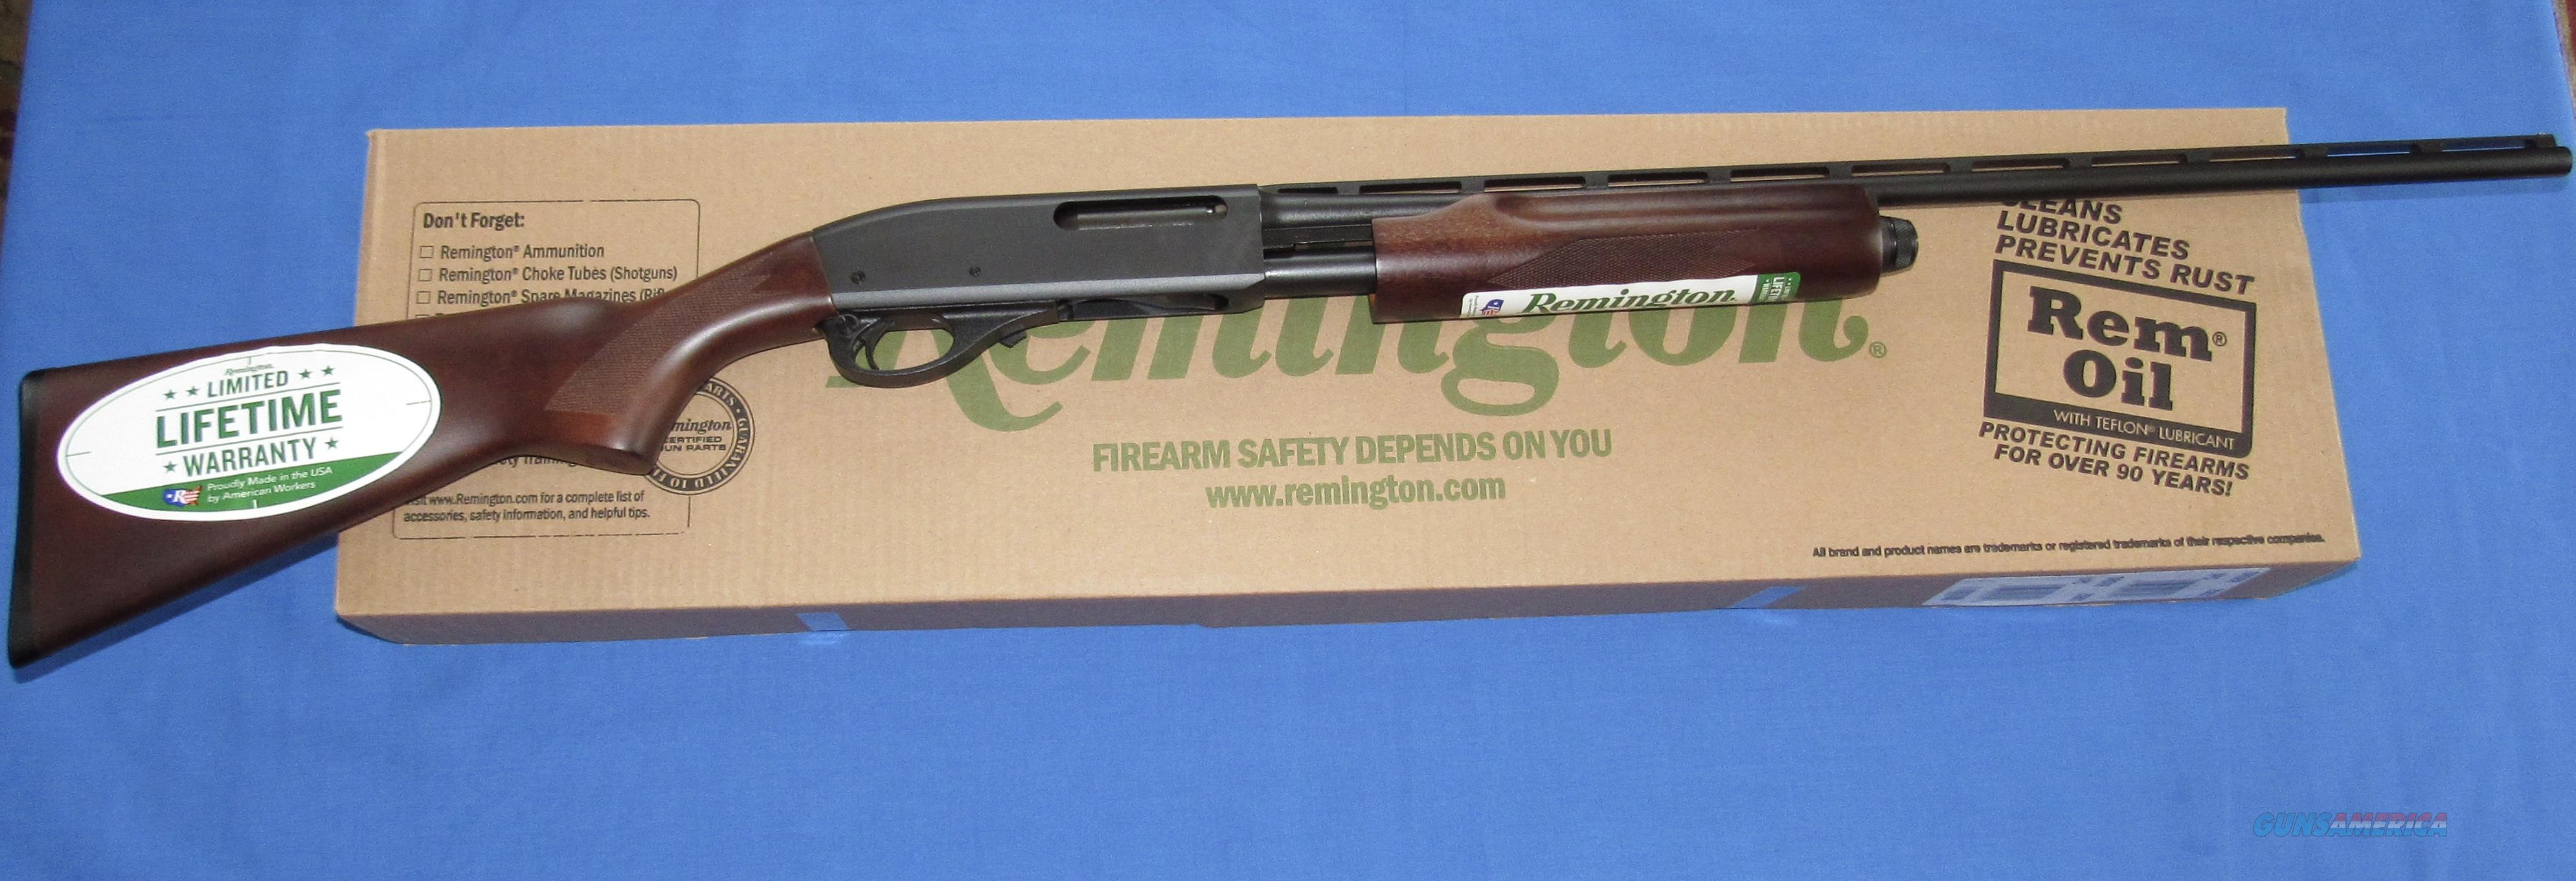 REMINGTON 870 EXPRESS 410 GAUGE PUMP SHOTGUN NEW!  Guns > Shotguns > Remington Shotguns  > Pump > Hunting